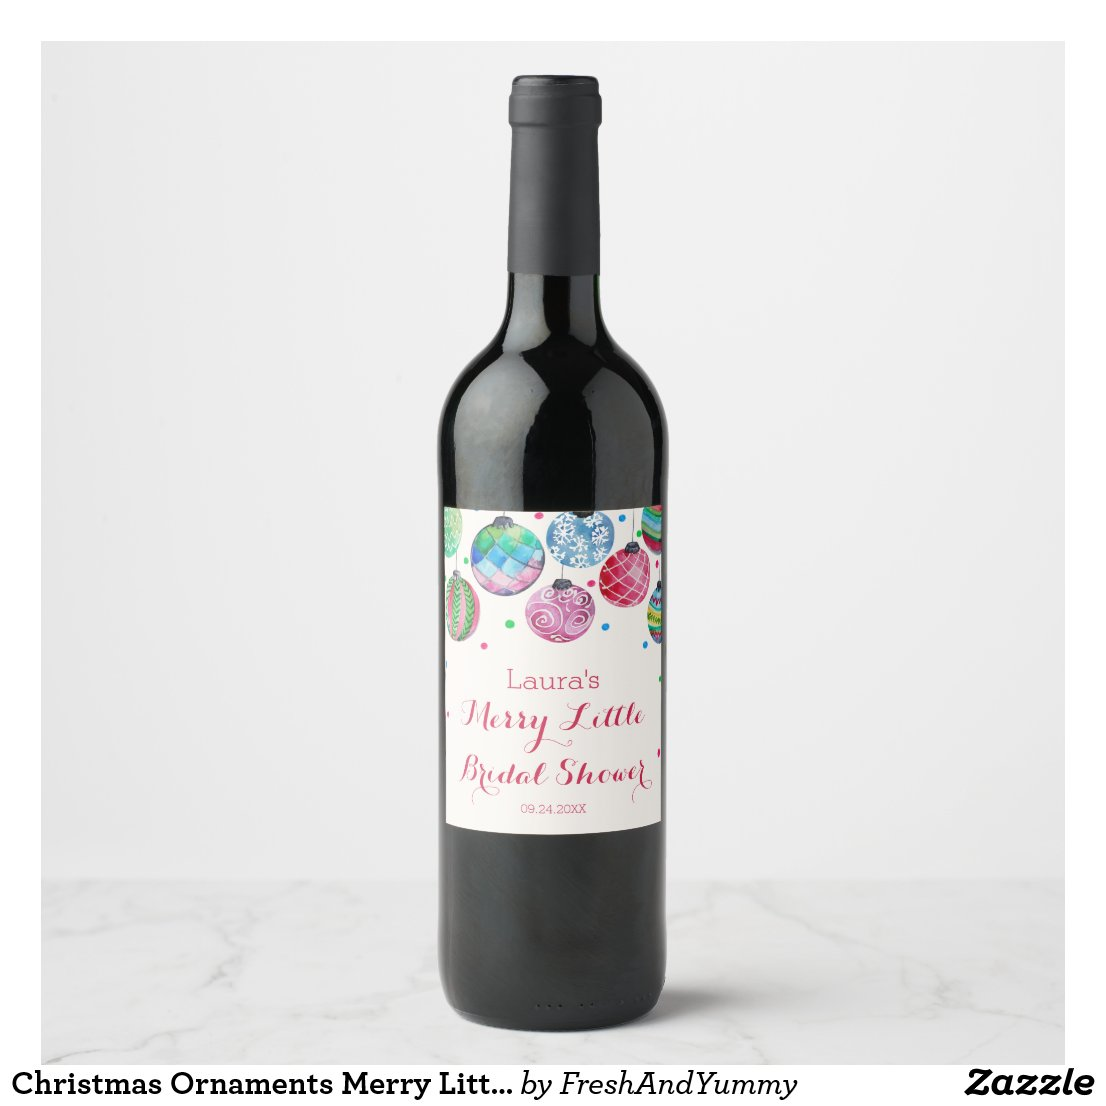 Christmas Ornaments Merry Little Bridal Shower Wine Label